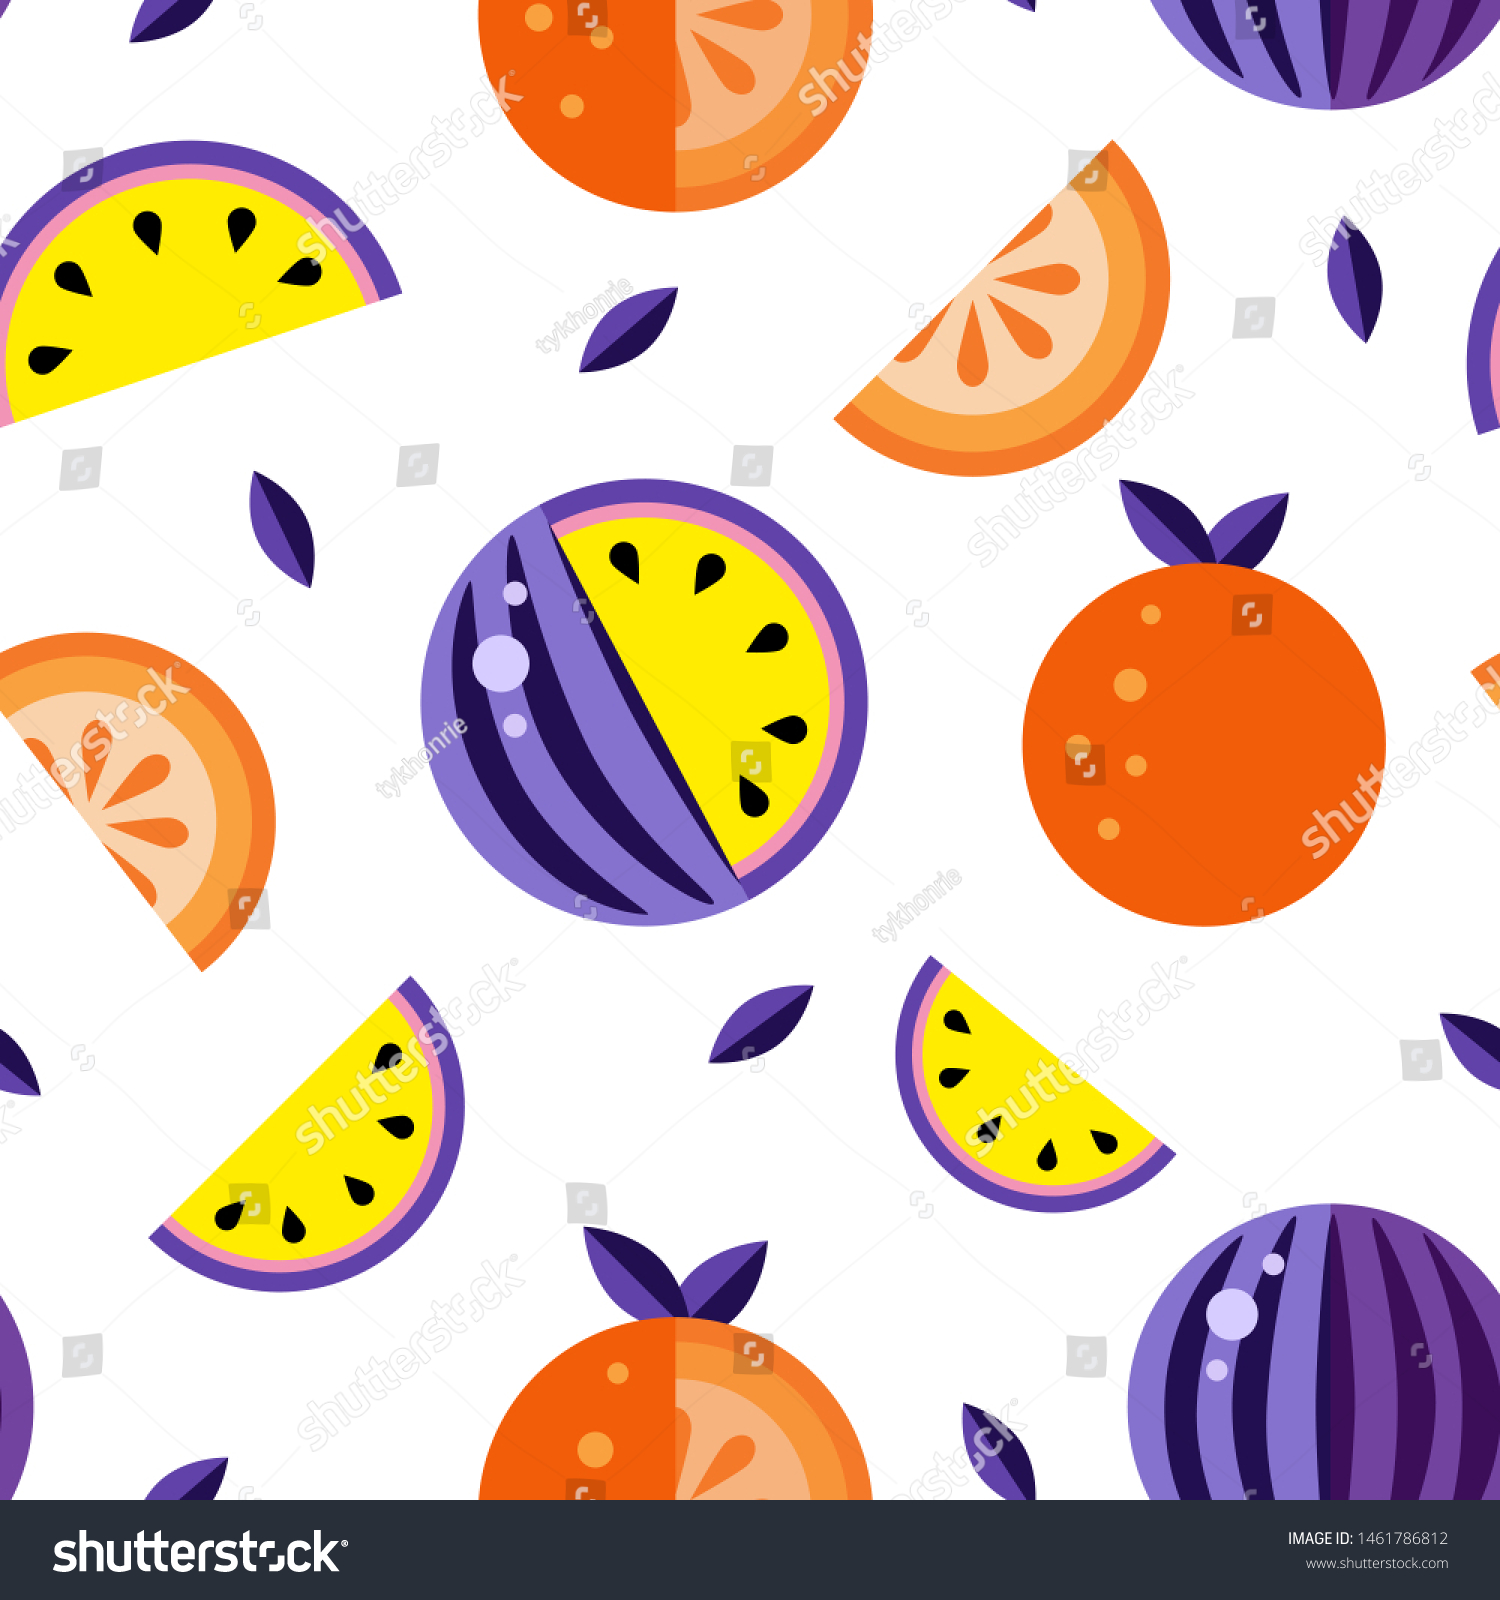 stock-vector-watermelons-violet-yellow-o